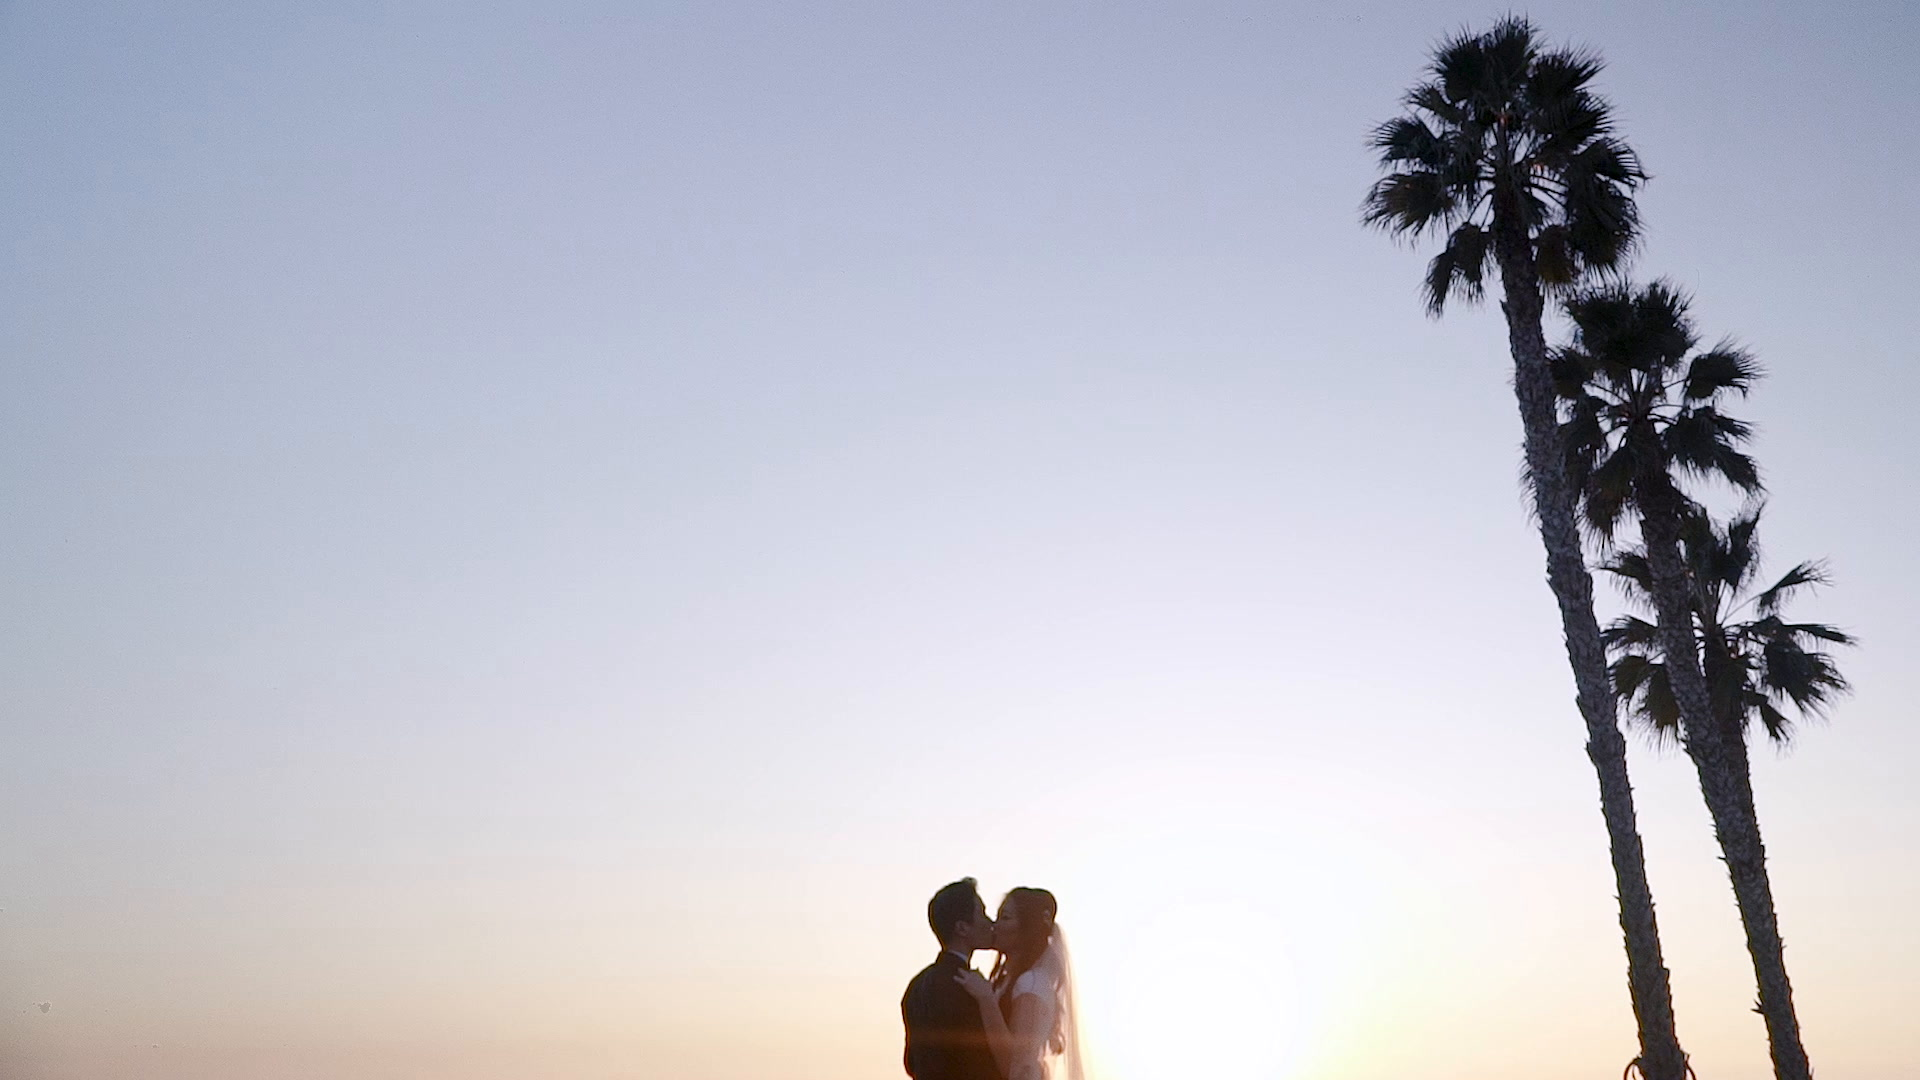 Rebecca + Matthew | San Clemente, California | The Casino San Clemente